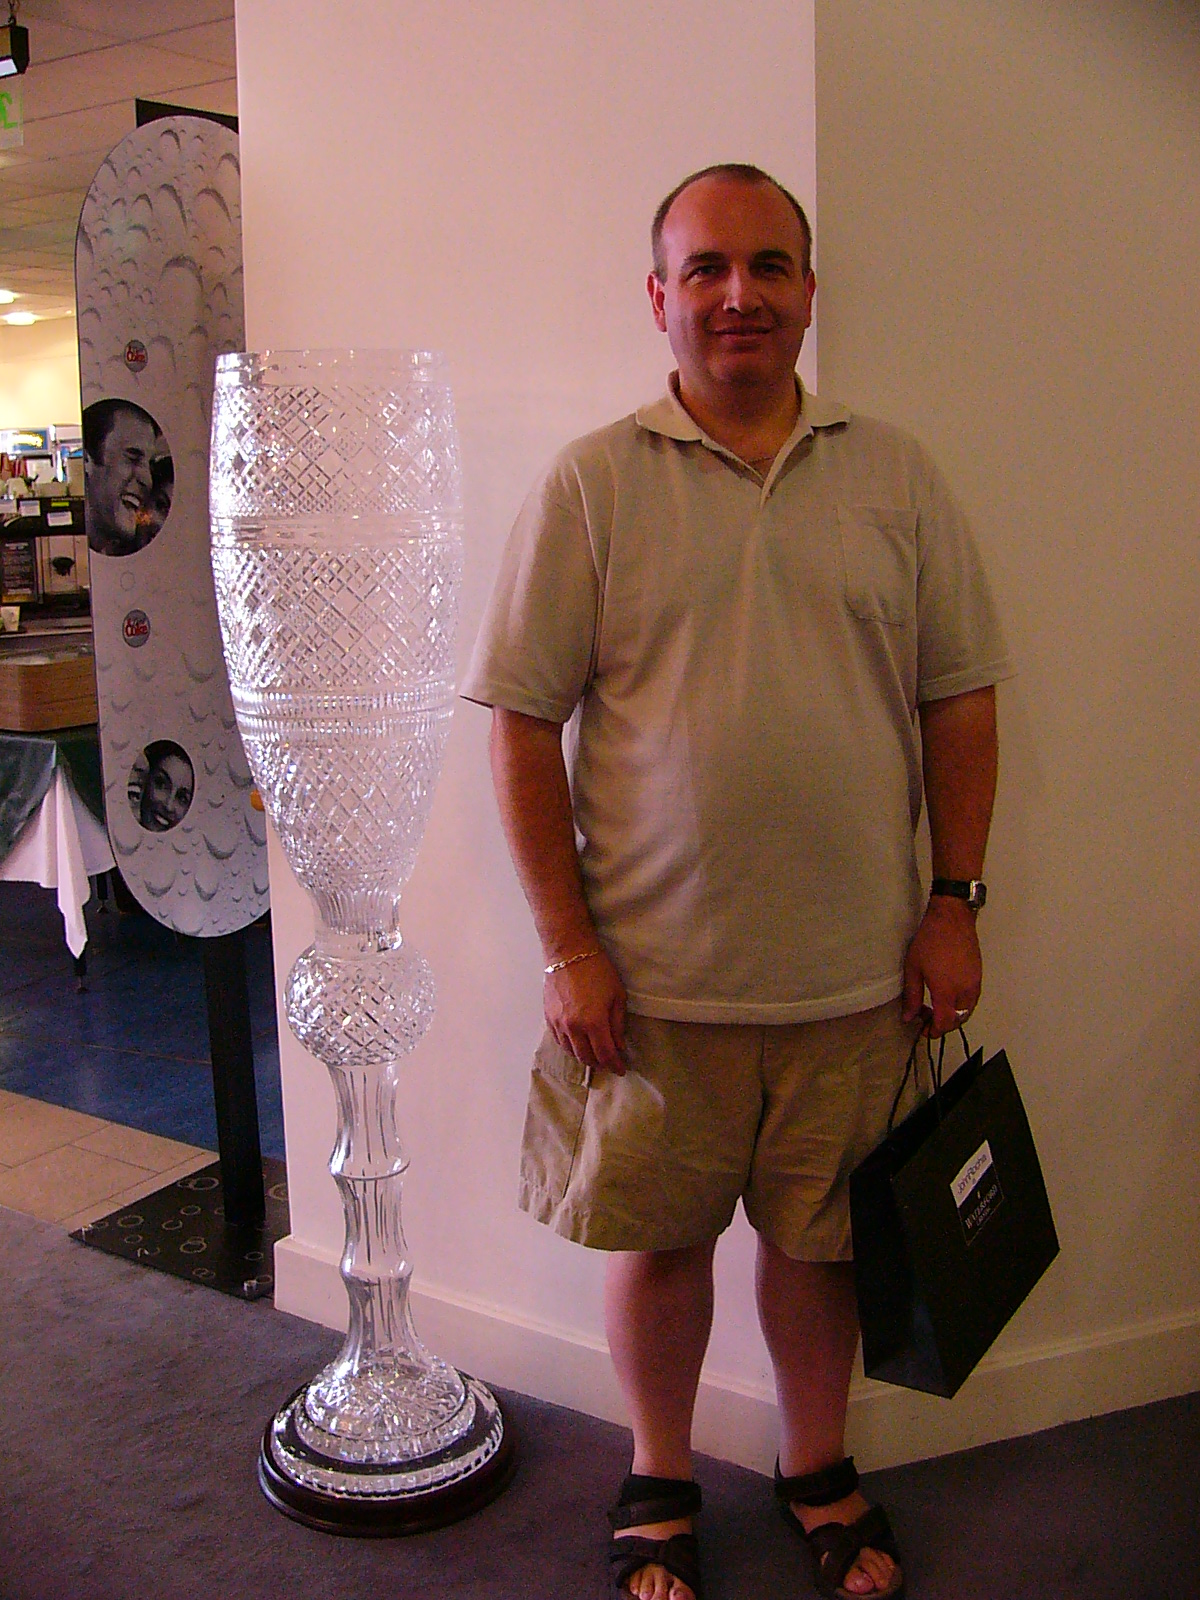 Graham, our accompanist, standing with what looks suspiciously like a very large champagne glass.